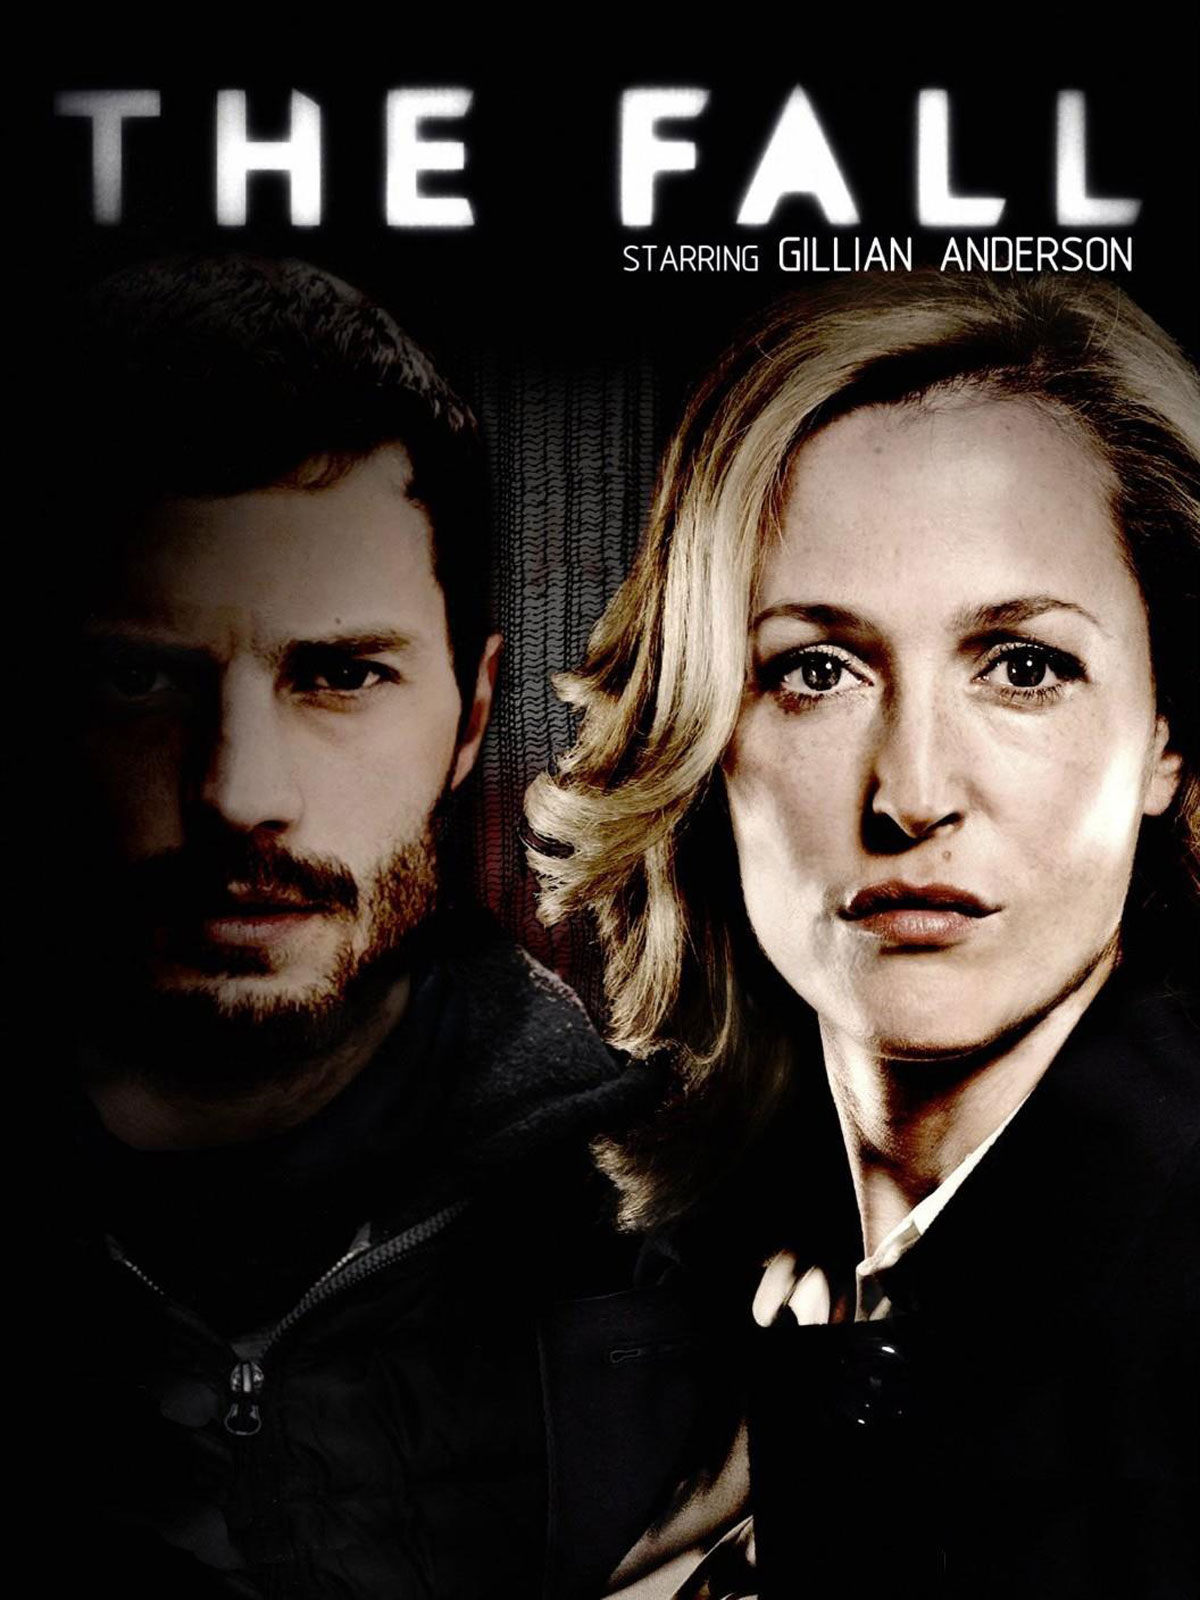 15 - The Fall